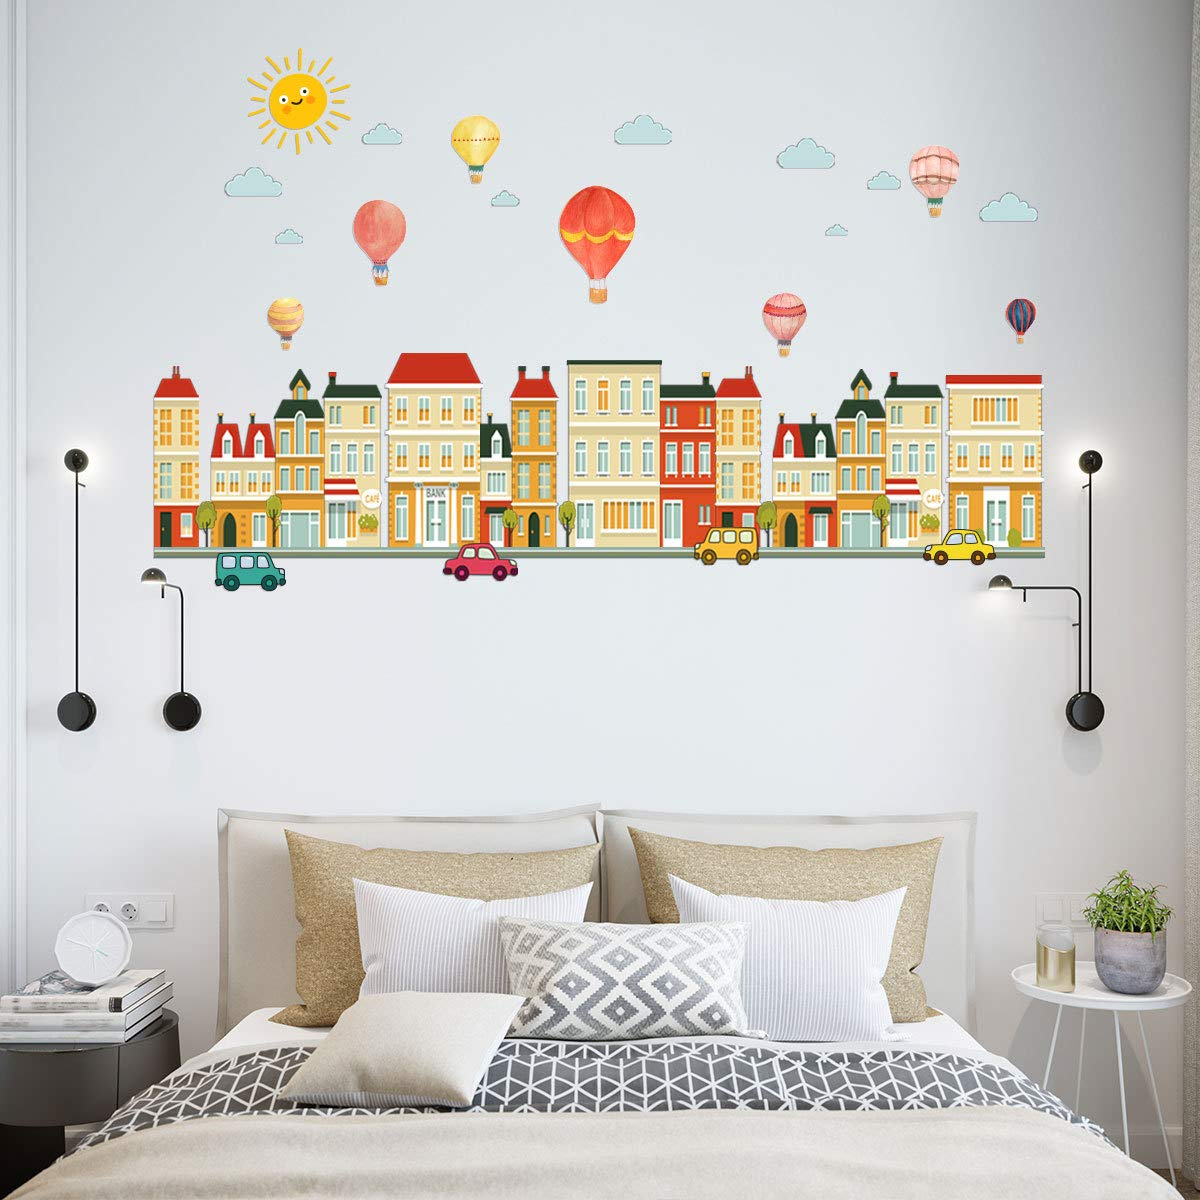 RodwayH Street View and Hot Air Balloons Kids Wall Decals Wall Stickers Peel and Stick Removable Wall Stickers for Kids Nursery Bedroom Living Room